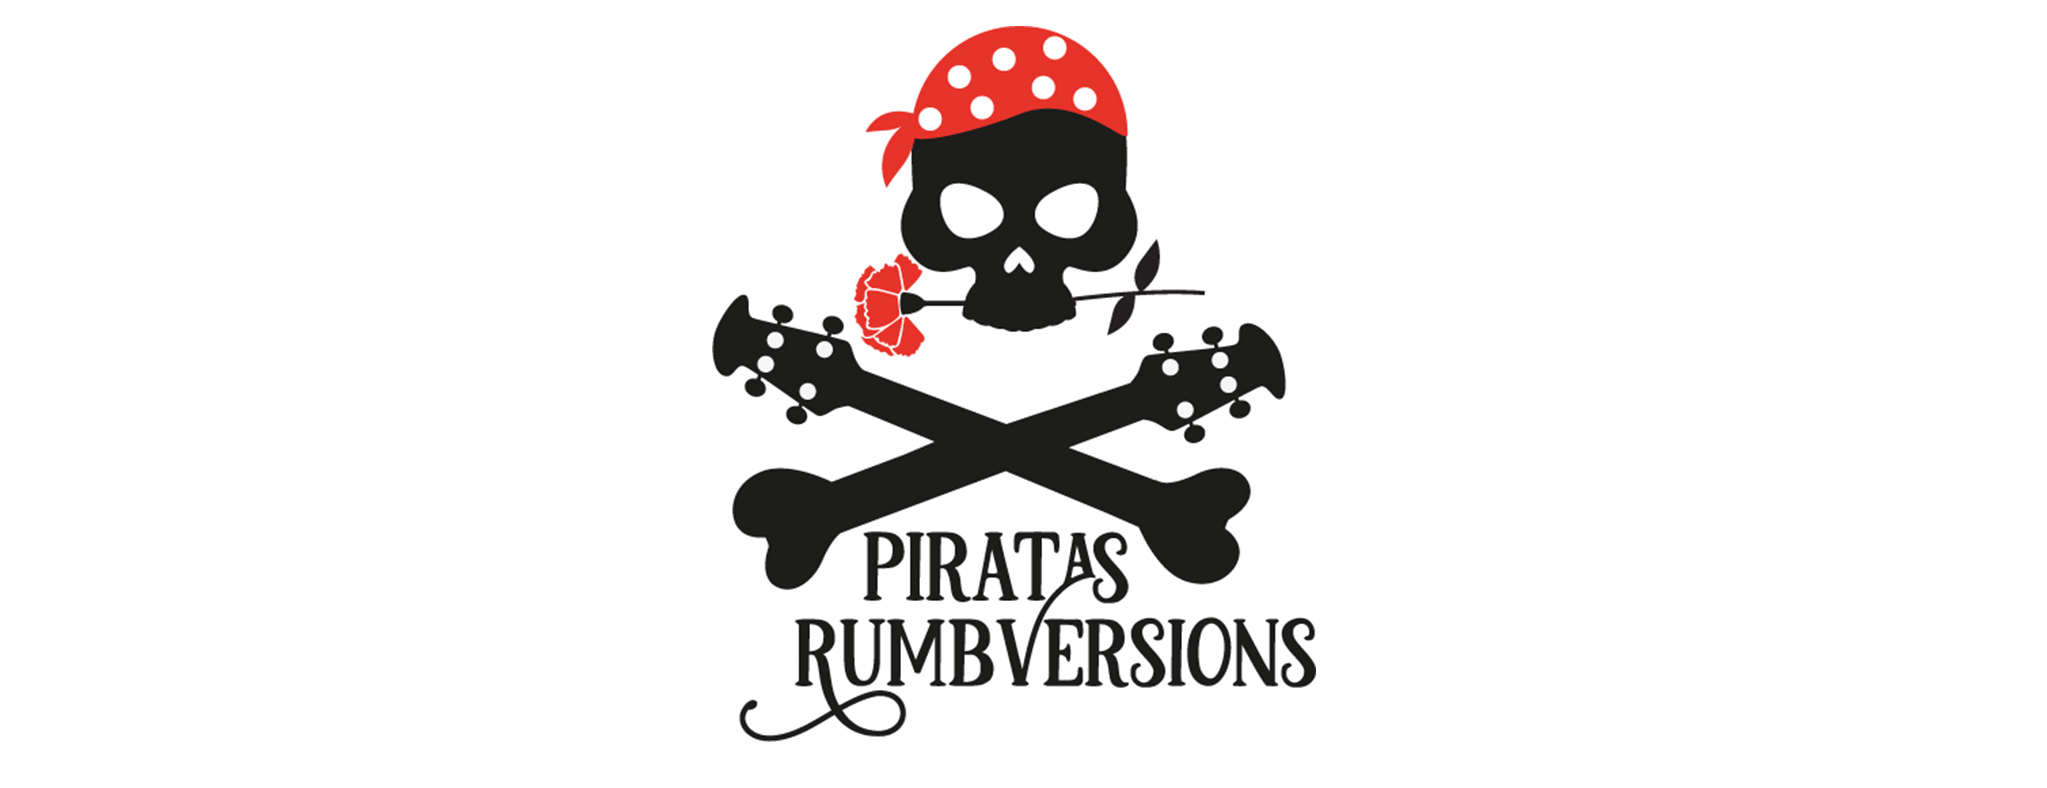 PIRATAS RUMBVERSIONES